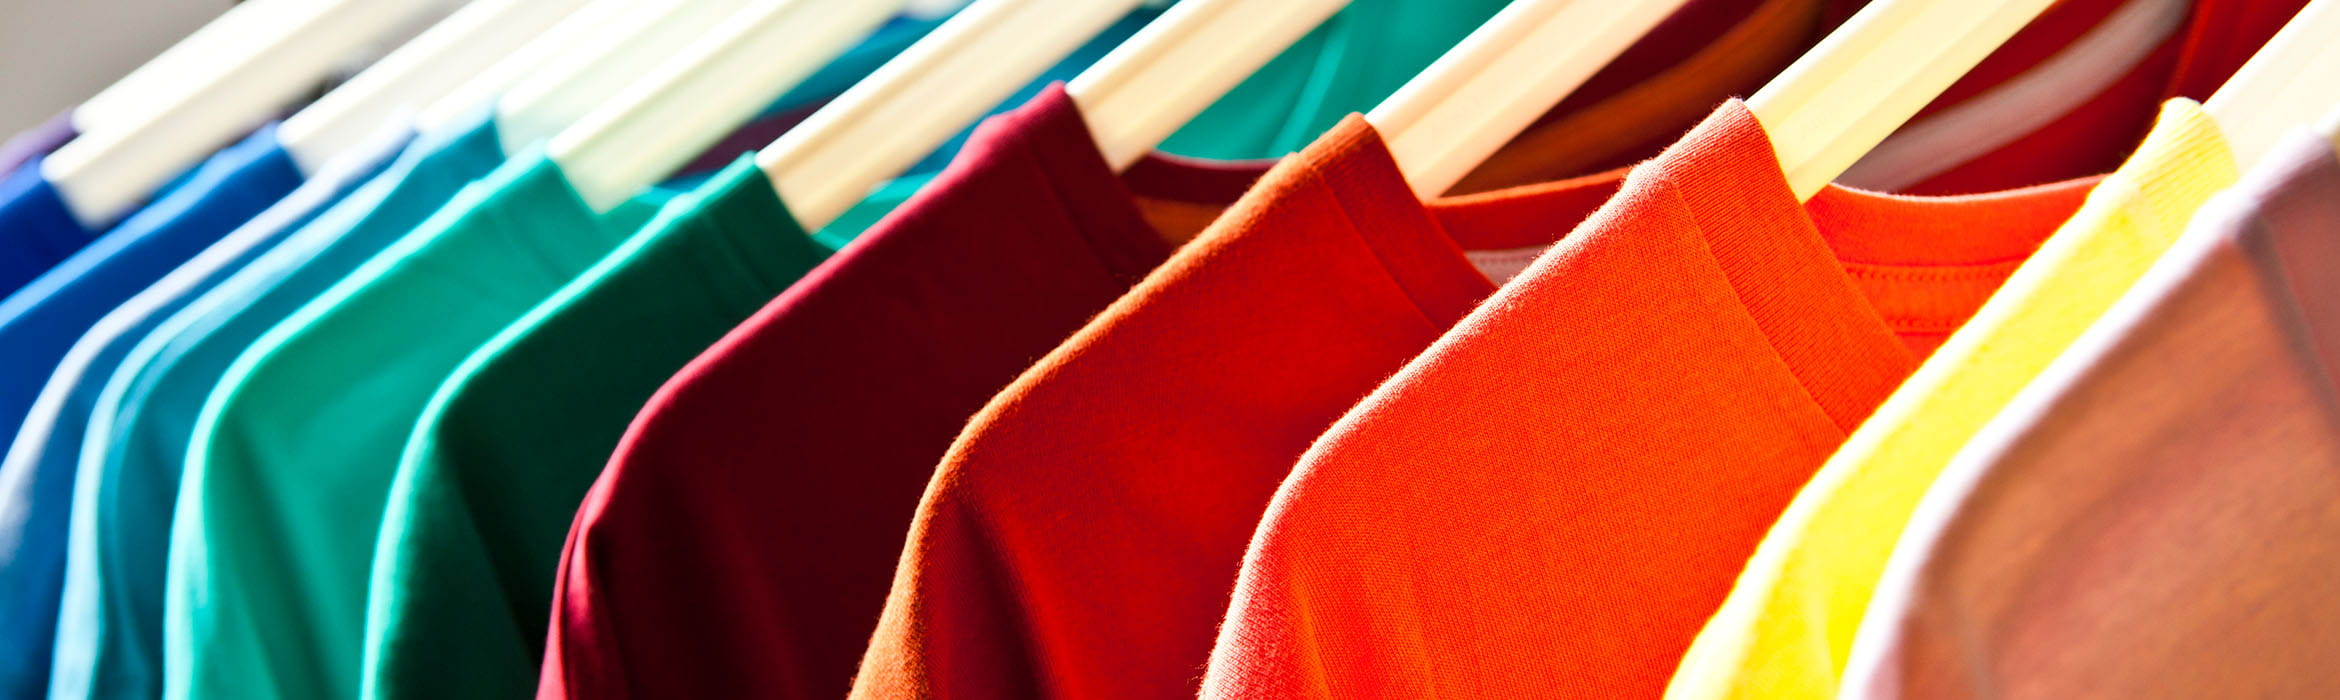 t-shirts on a retail clothes rail